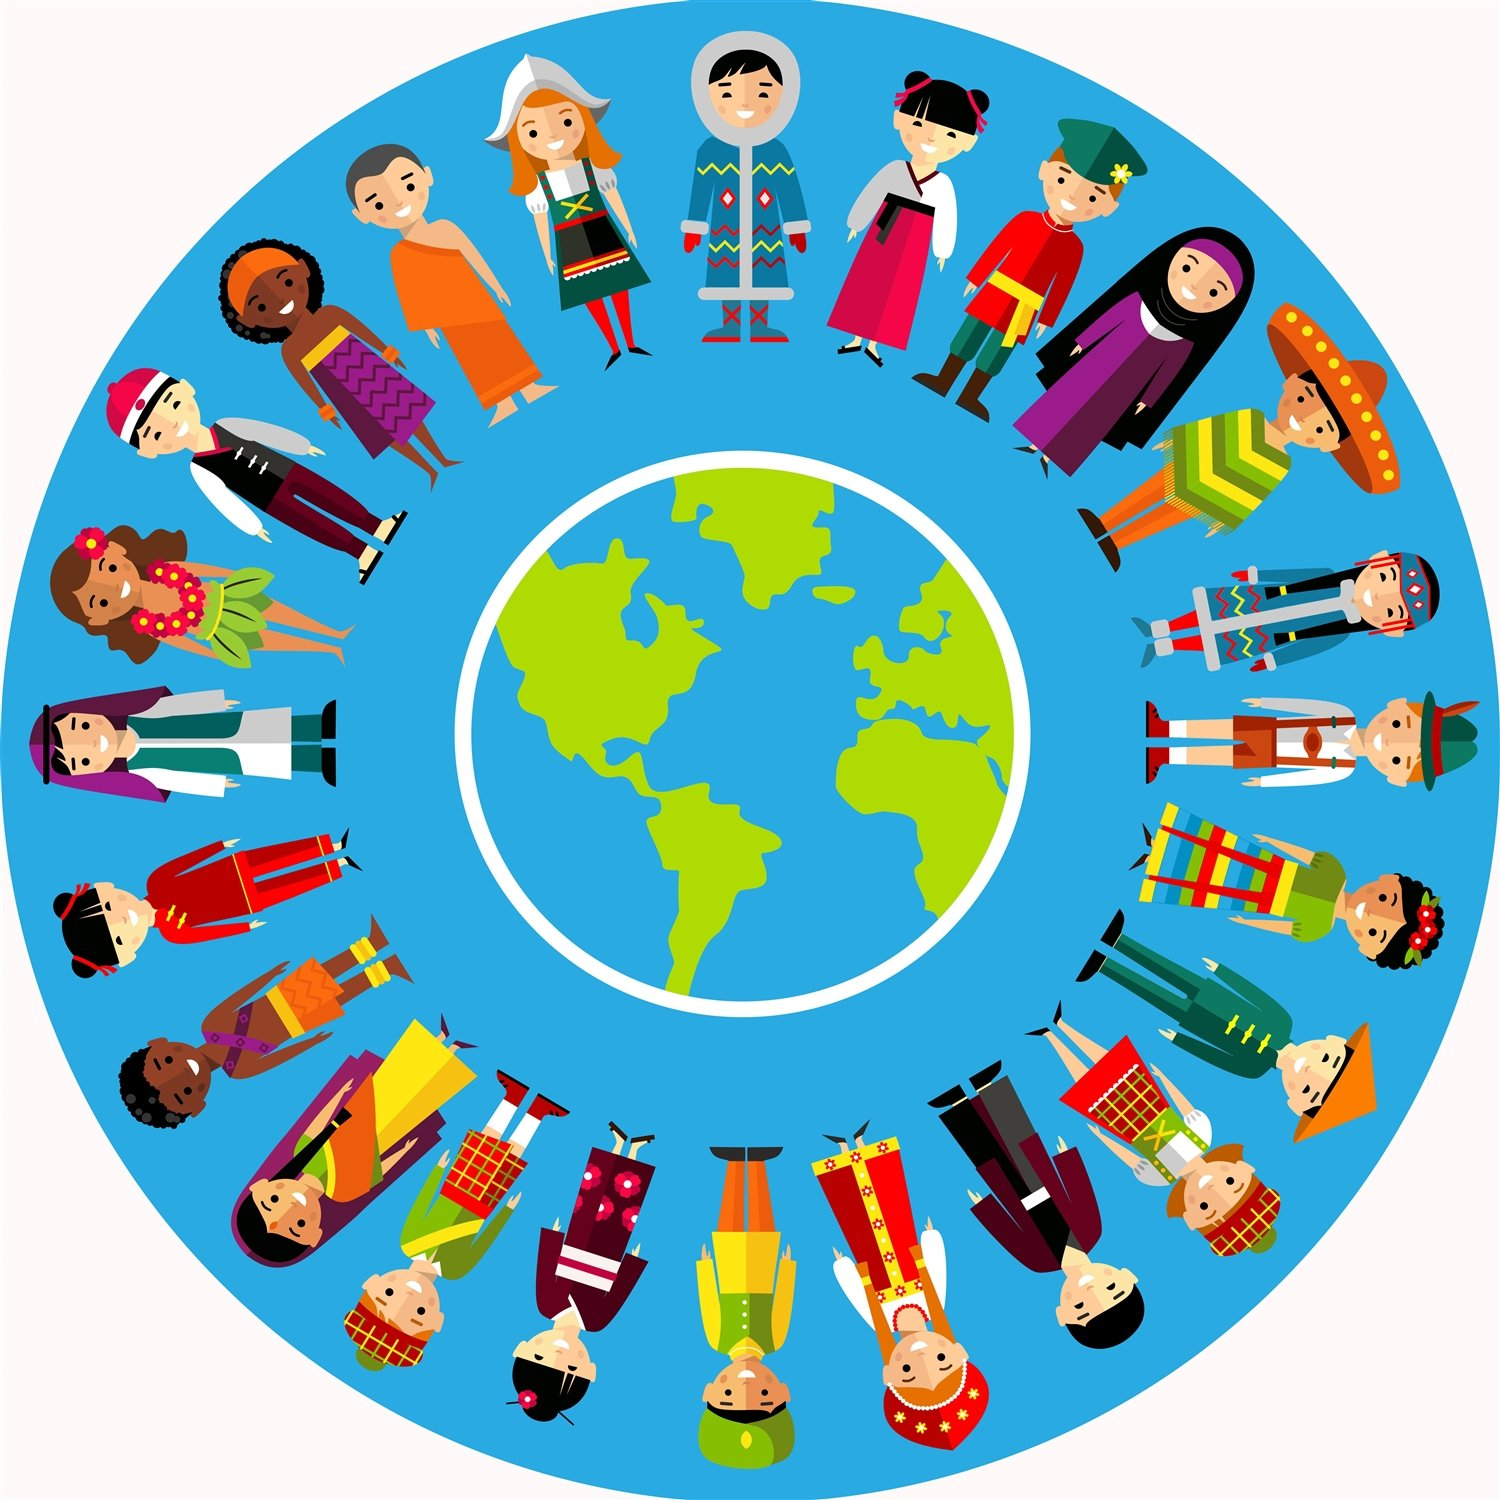 Be-Active Large Multi Cultural Circular Playmat - A fun addition to the bedroom, nursery or classroom (88 x 88cm)